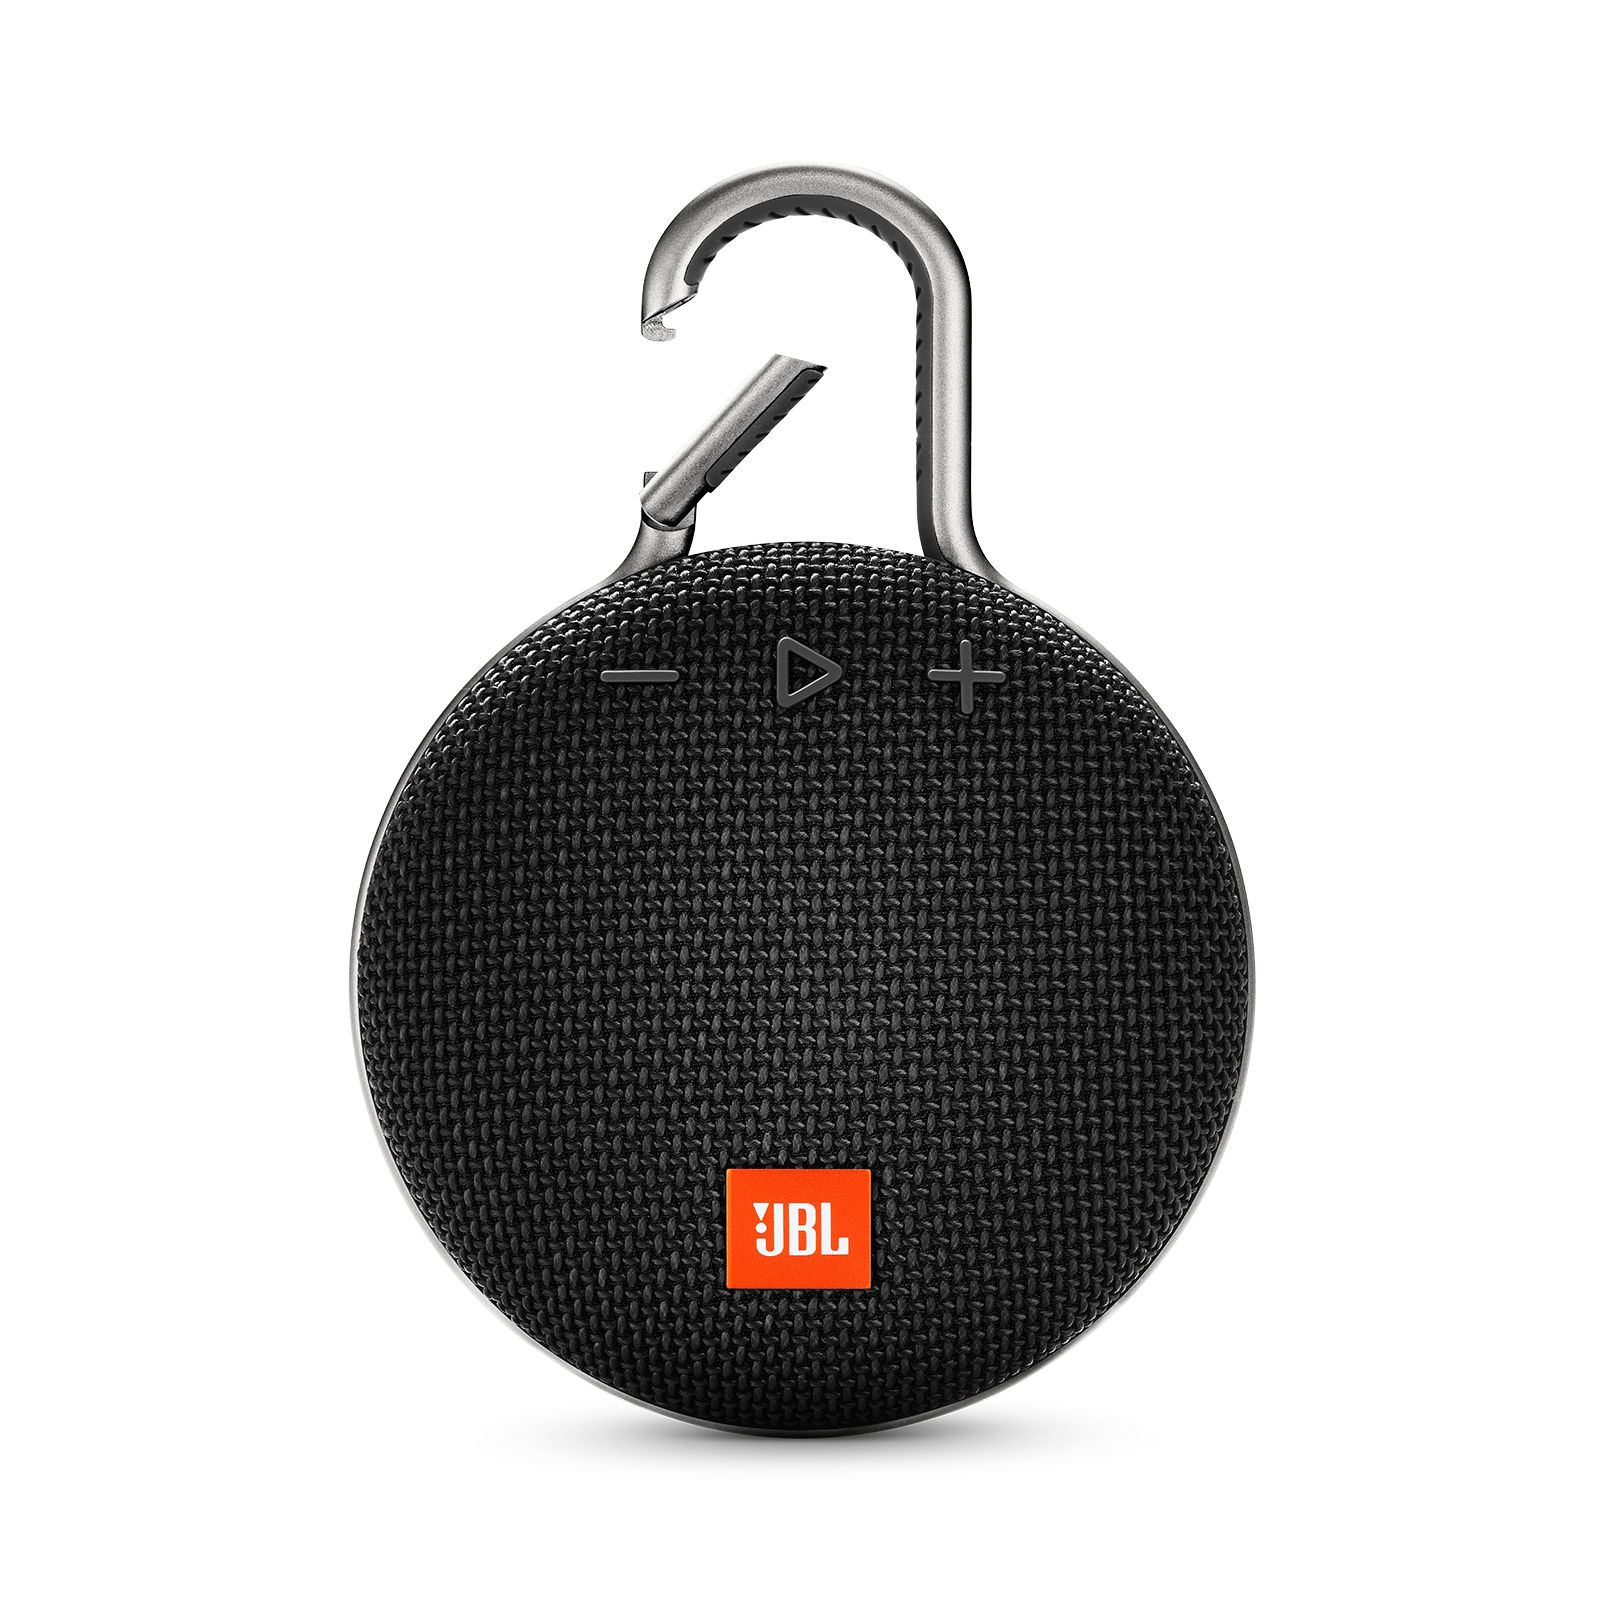 JBL CLIP 3 - Midnight Black - Portable Bluetooth® speaker - Front